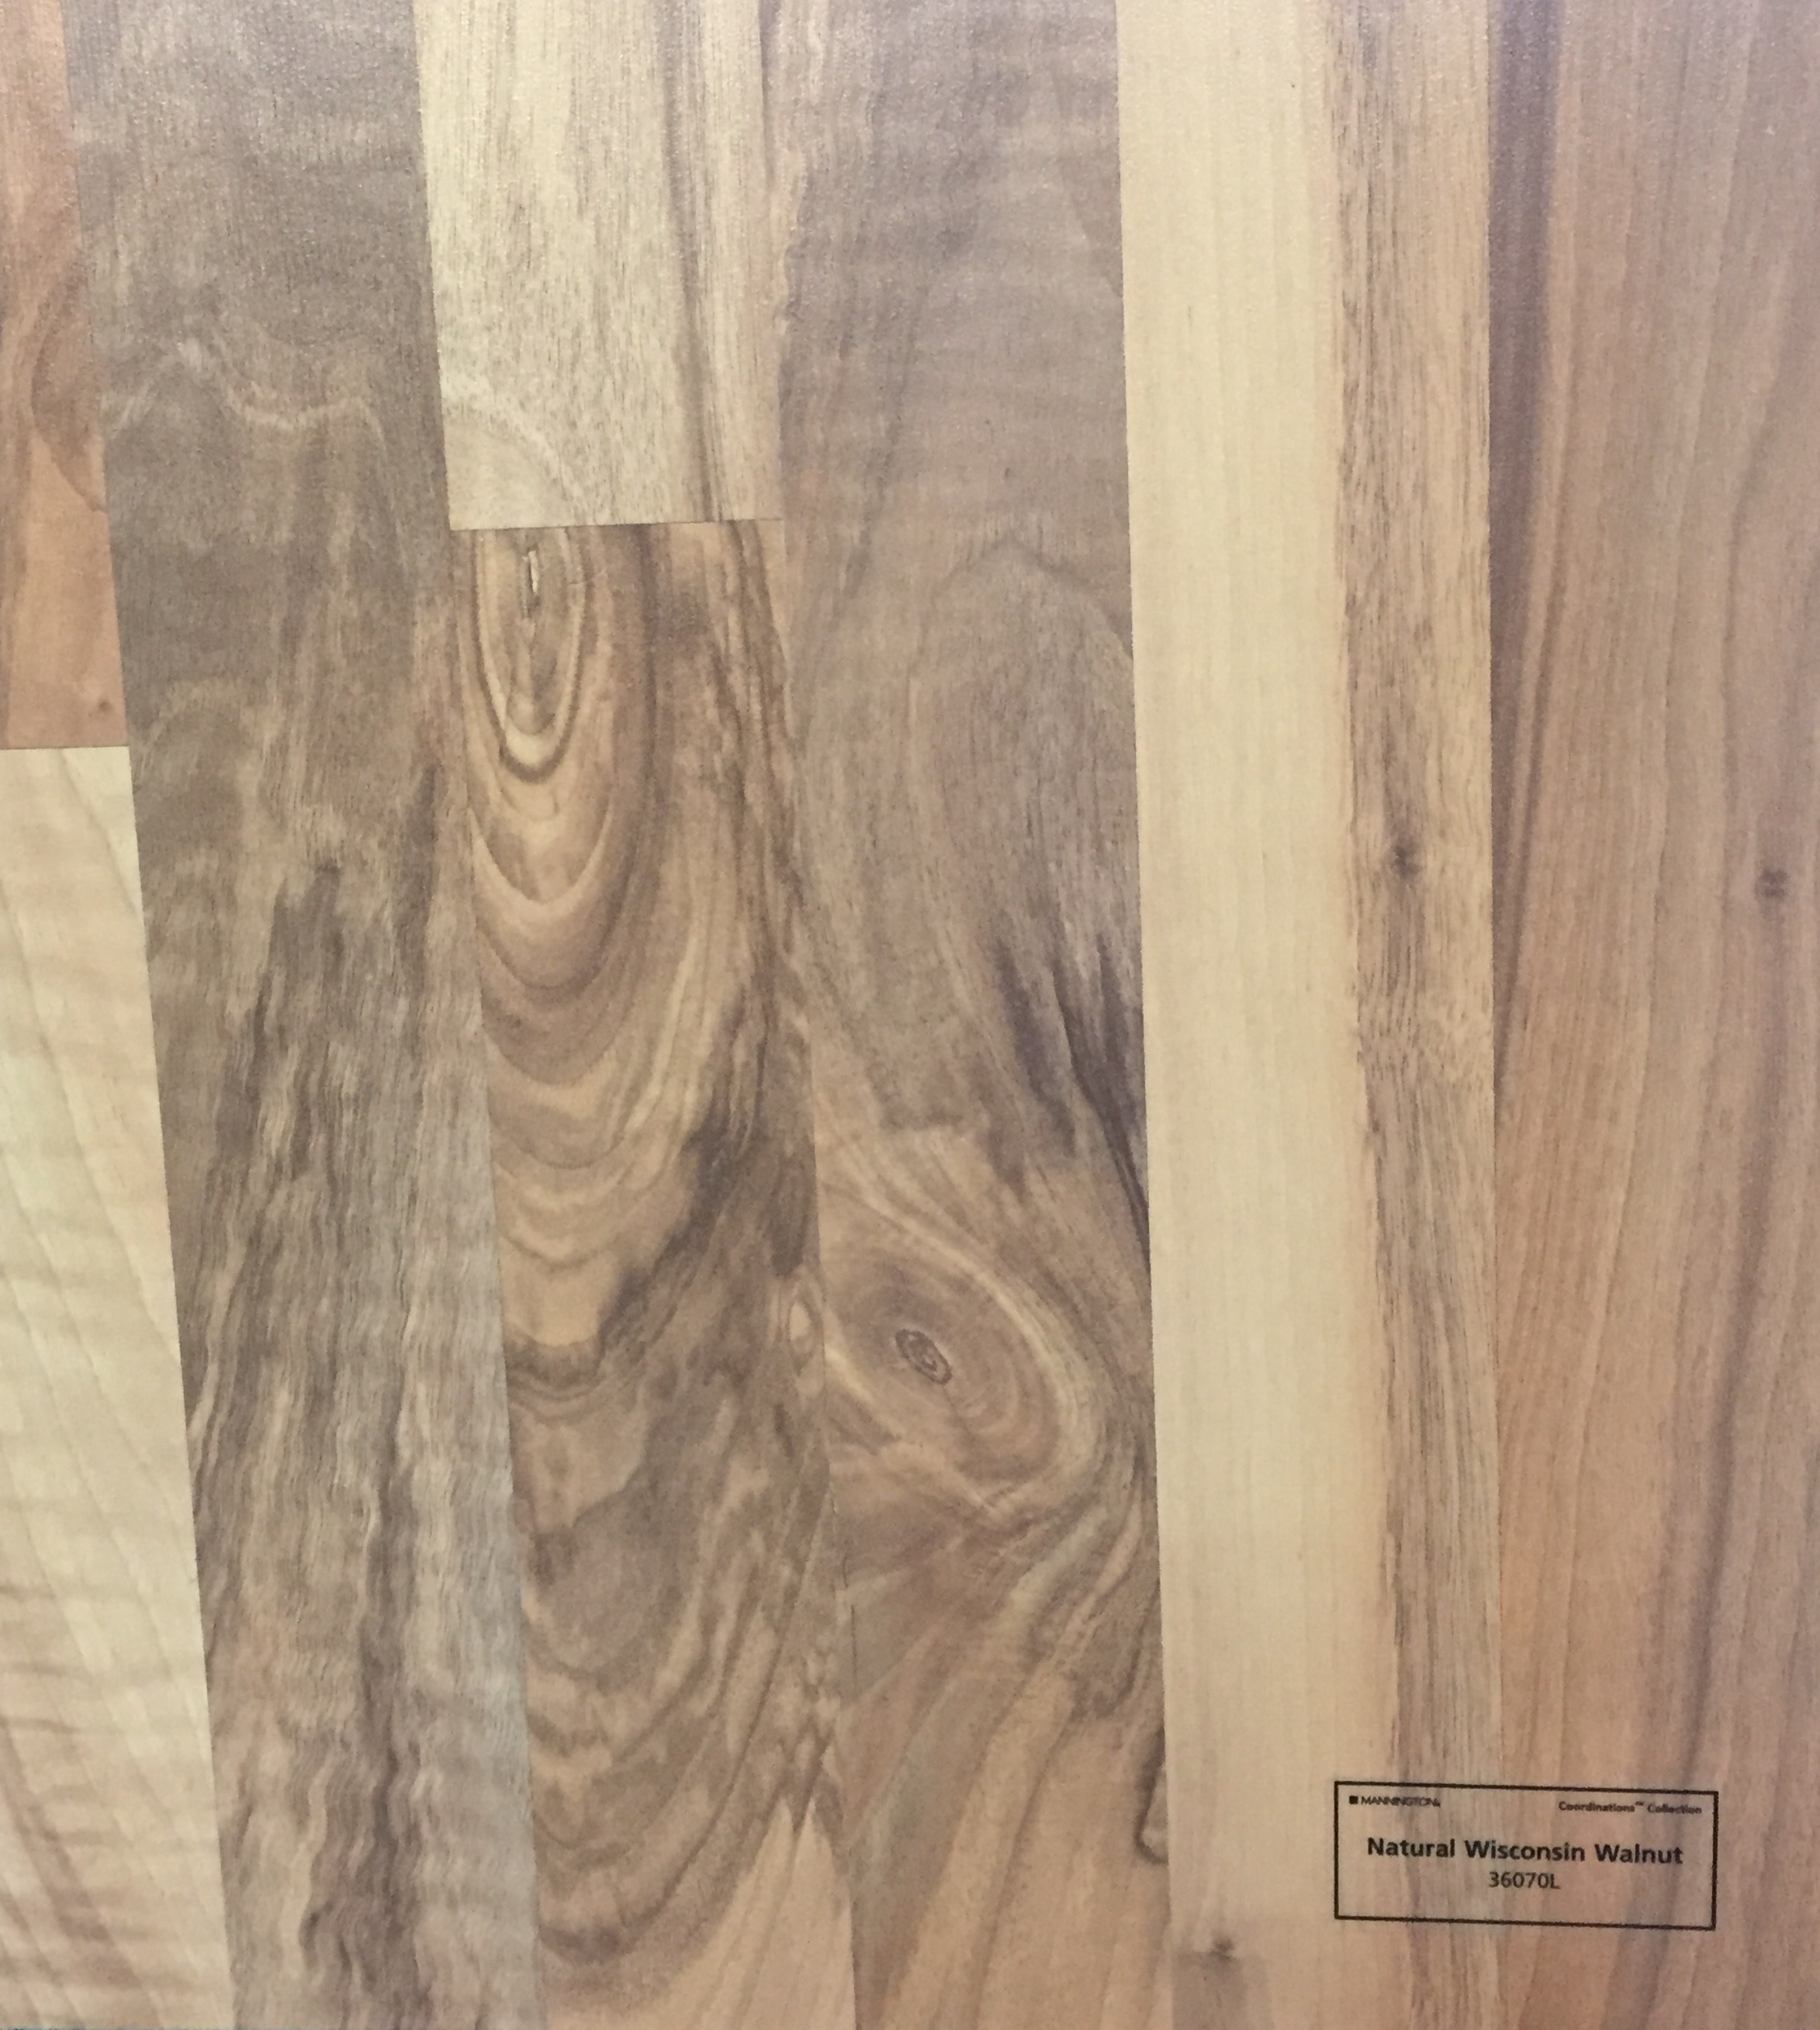 Natural Wisconsin Walnut - 36070L